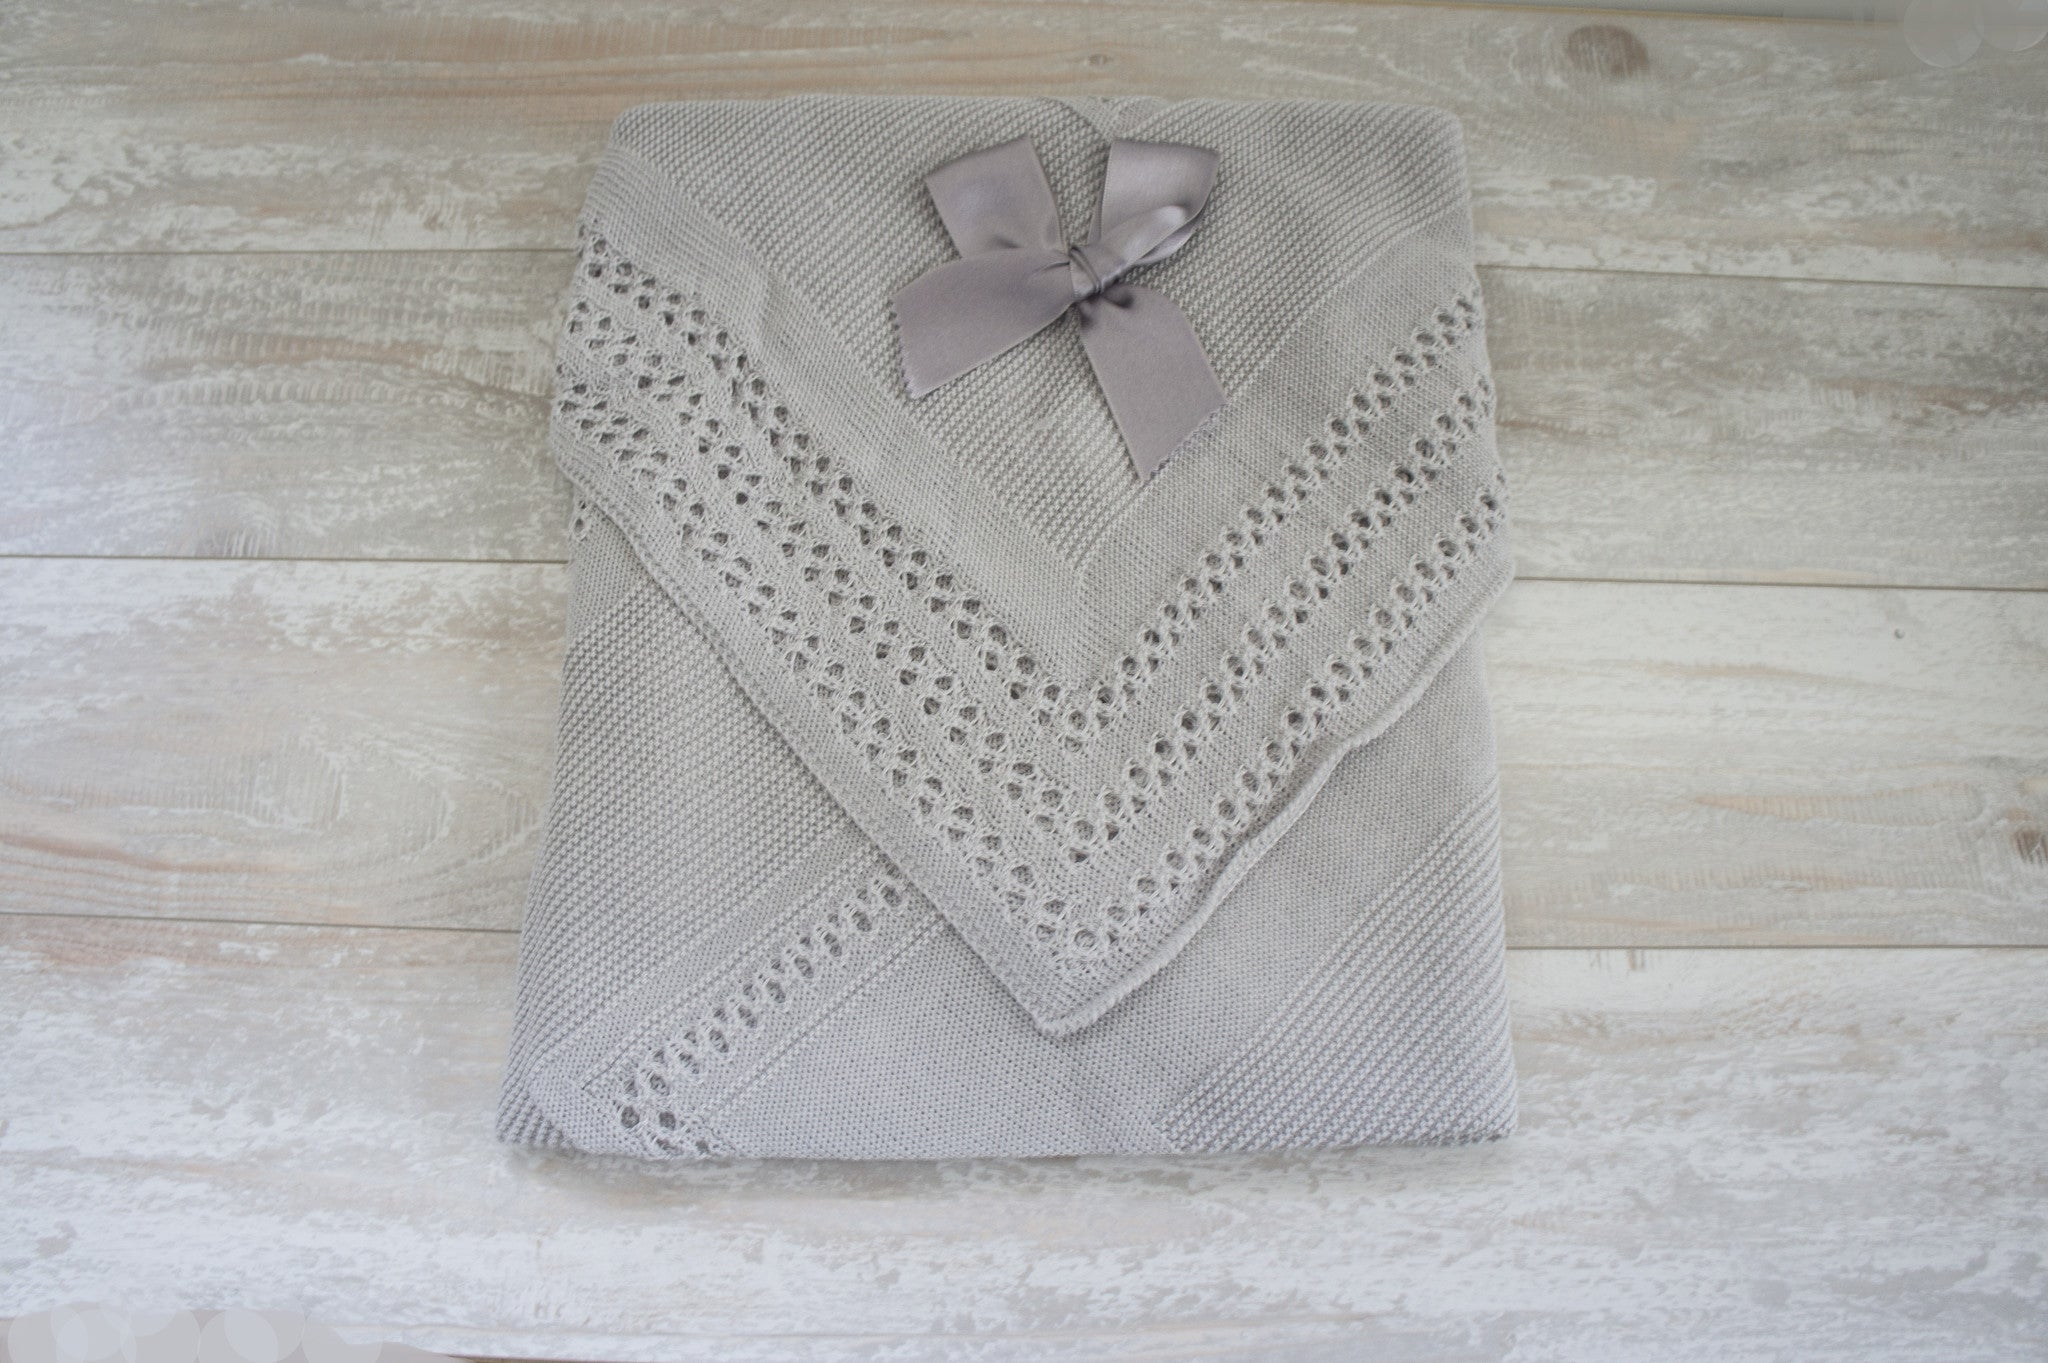 Soft and Cozy Newborn Knitted Receiving Blanket Unisex Grey